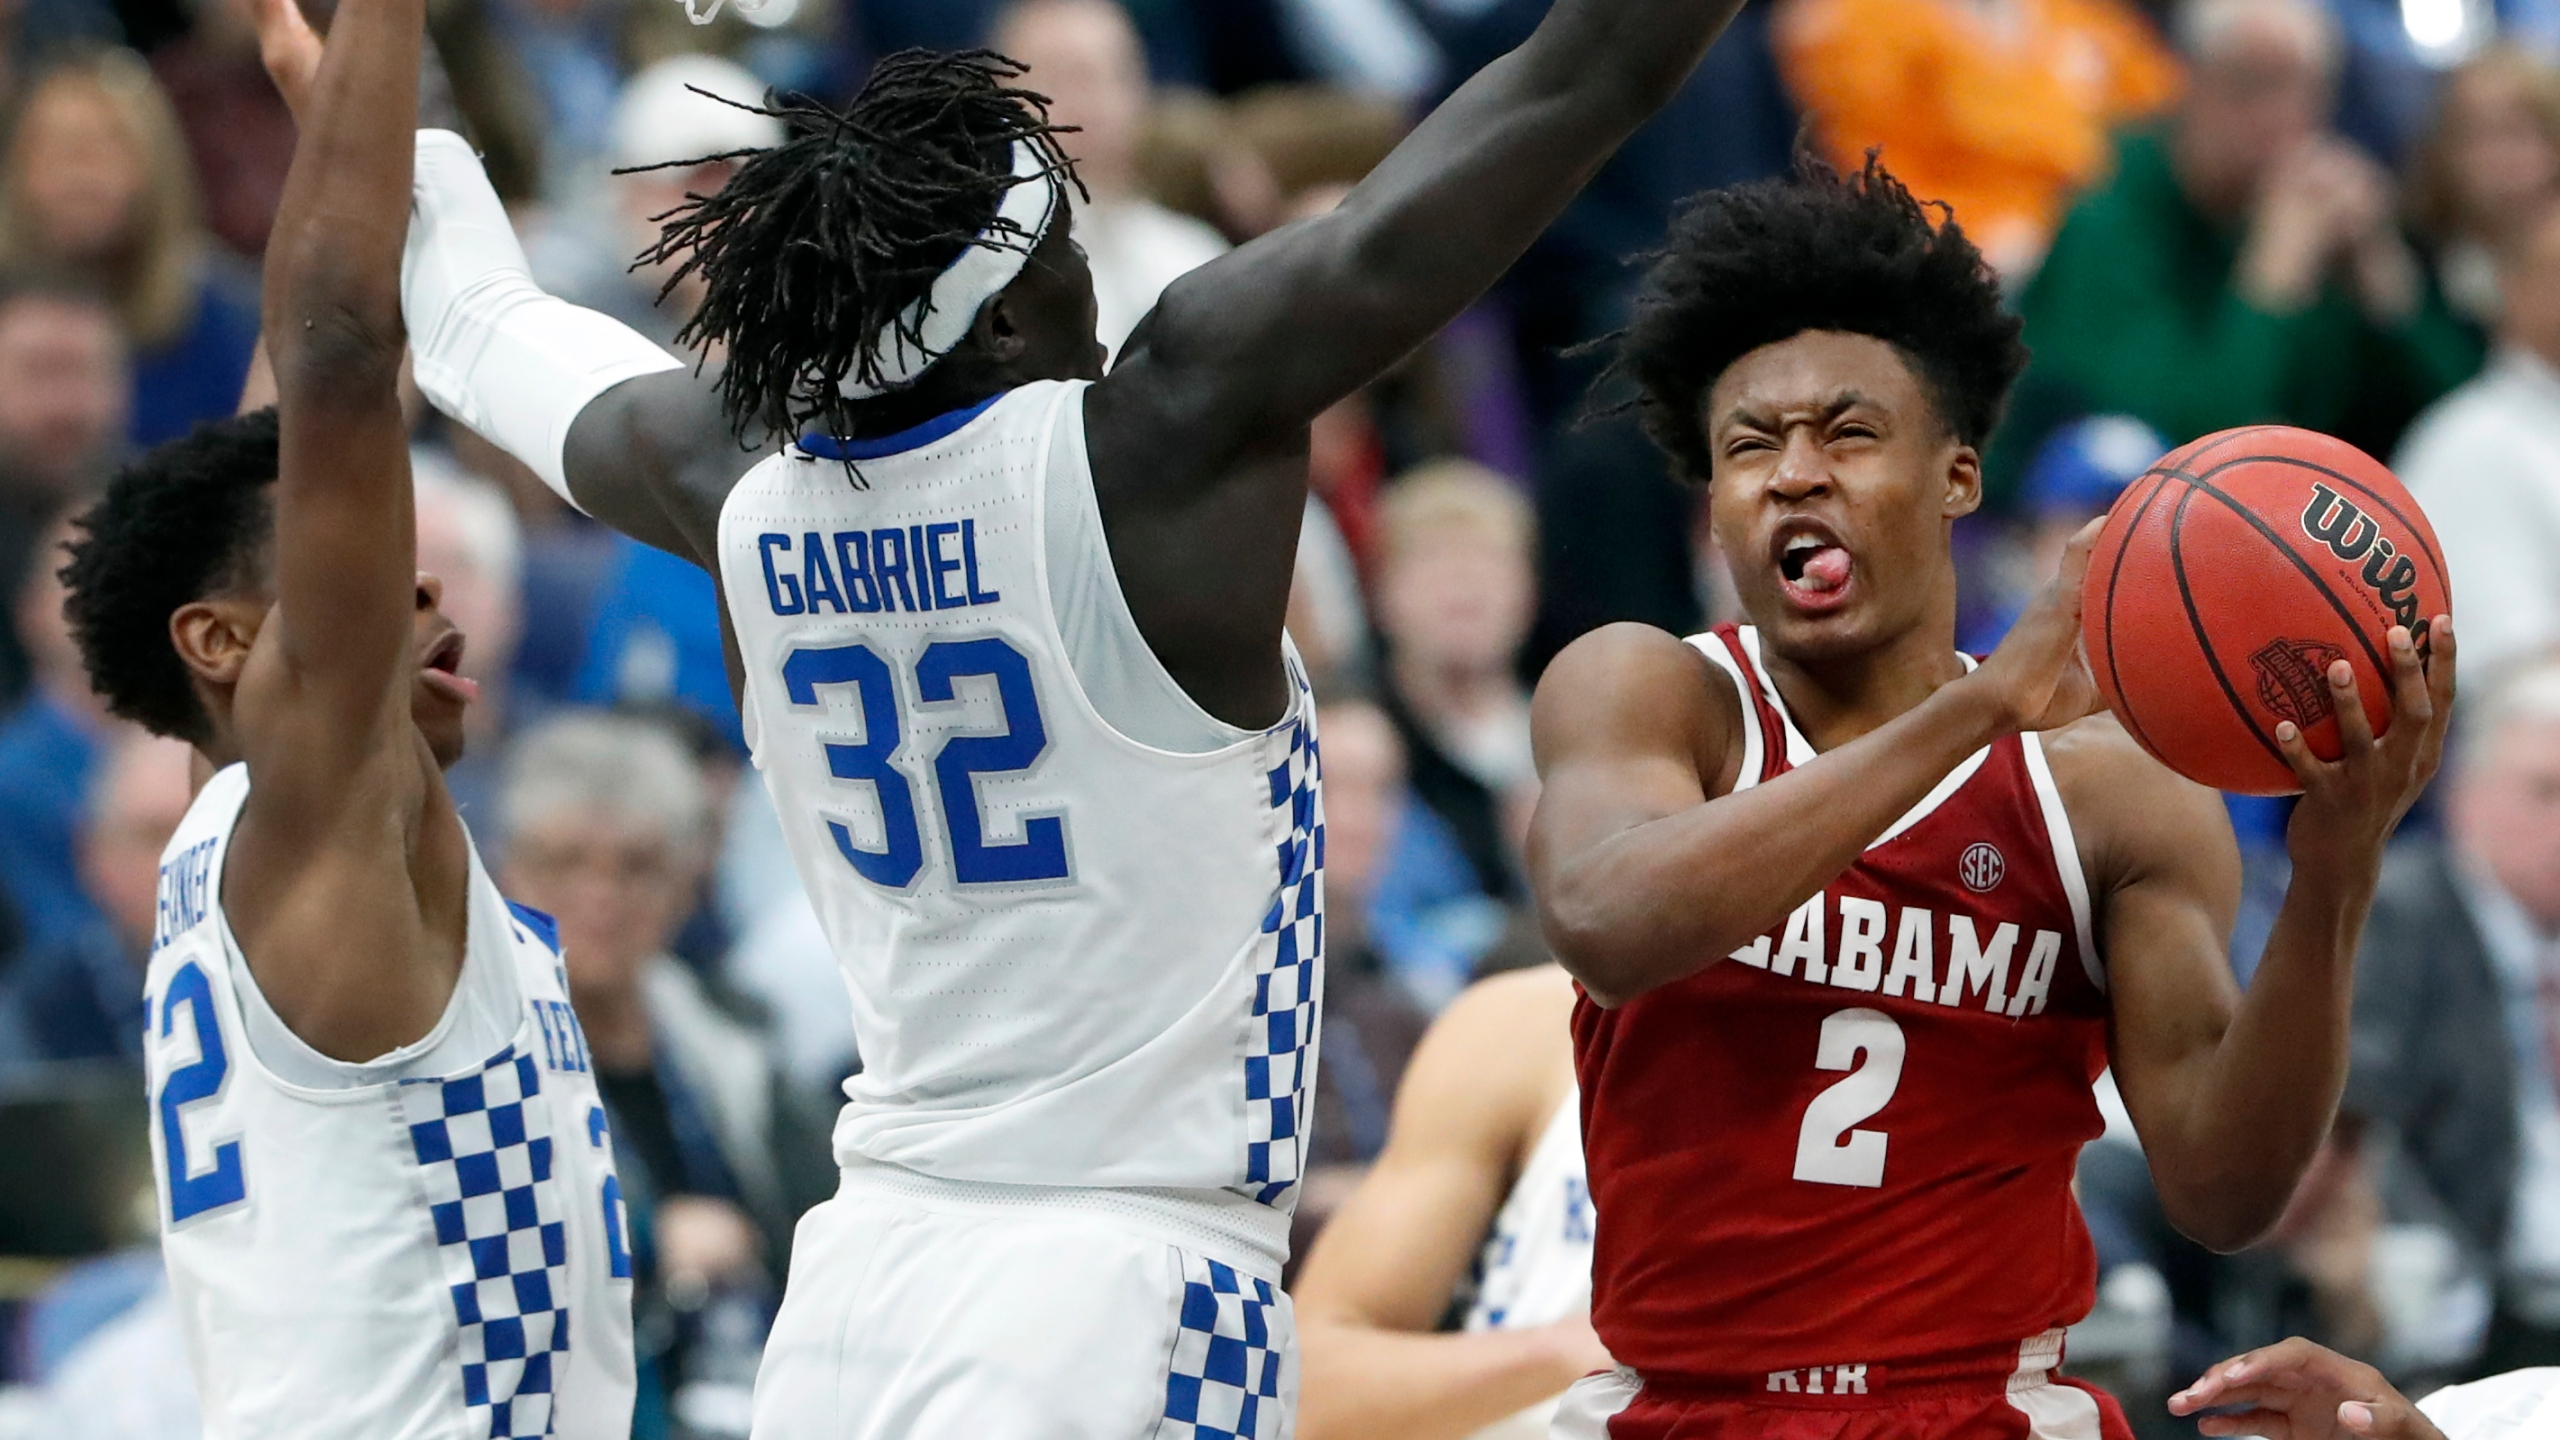 SEC_Alabama_Kentucky_Basketball_23555-159532.jpg96226279